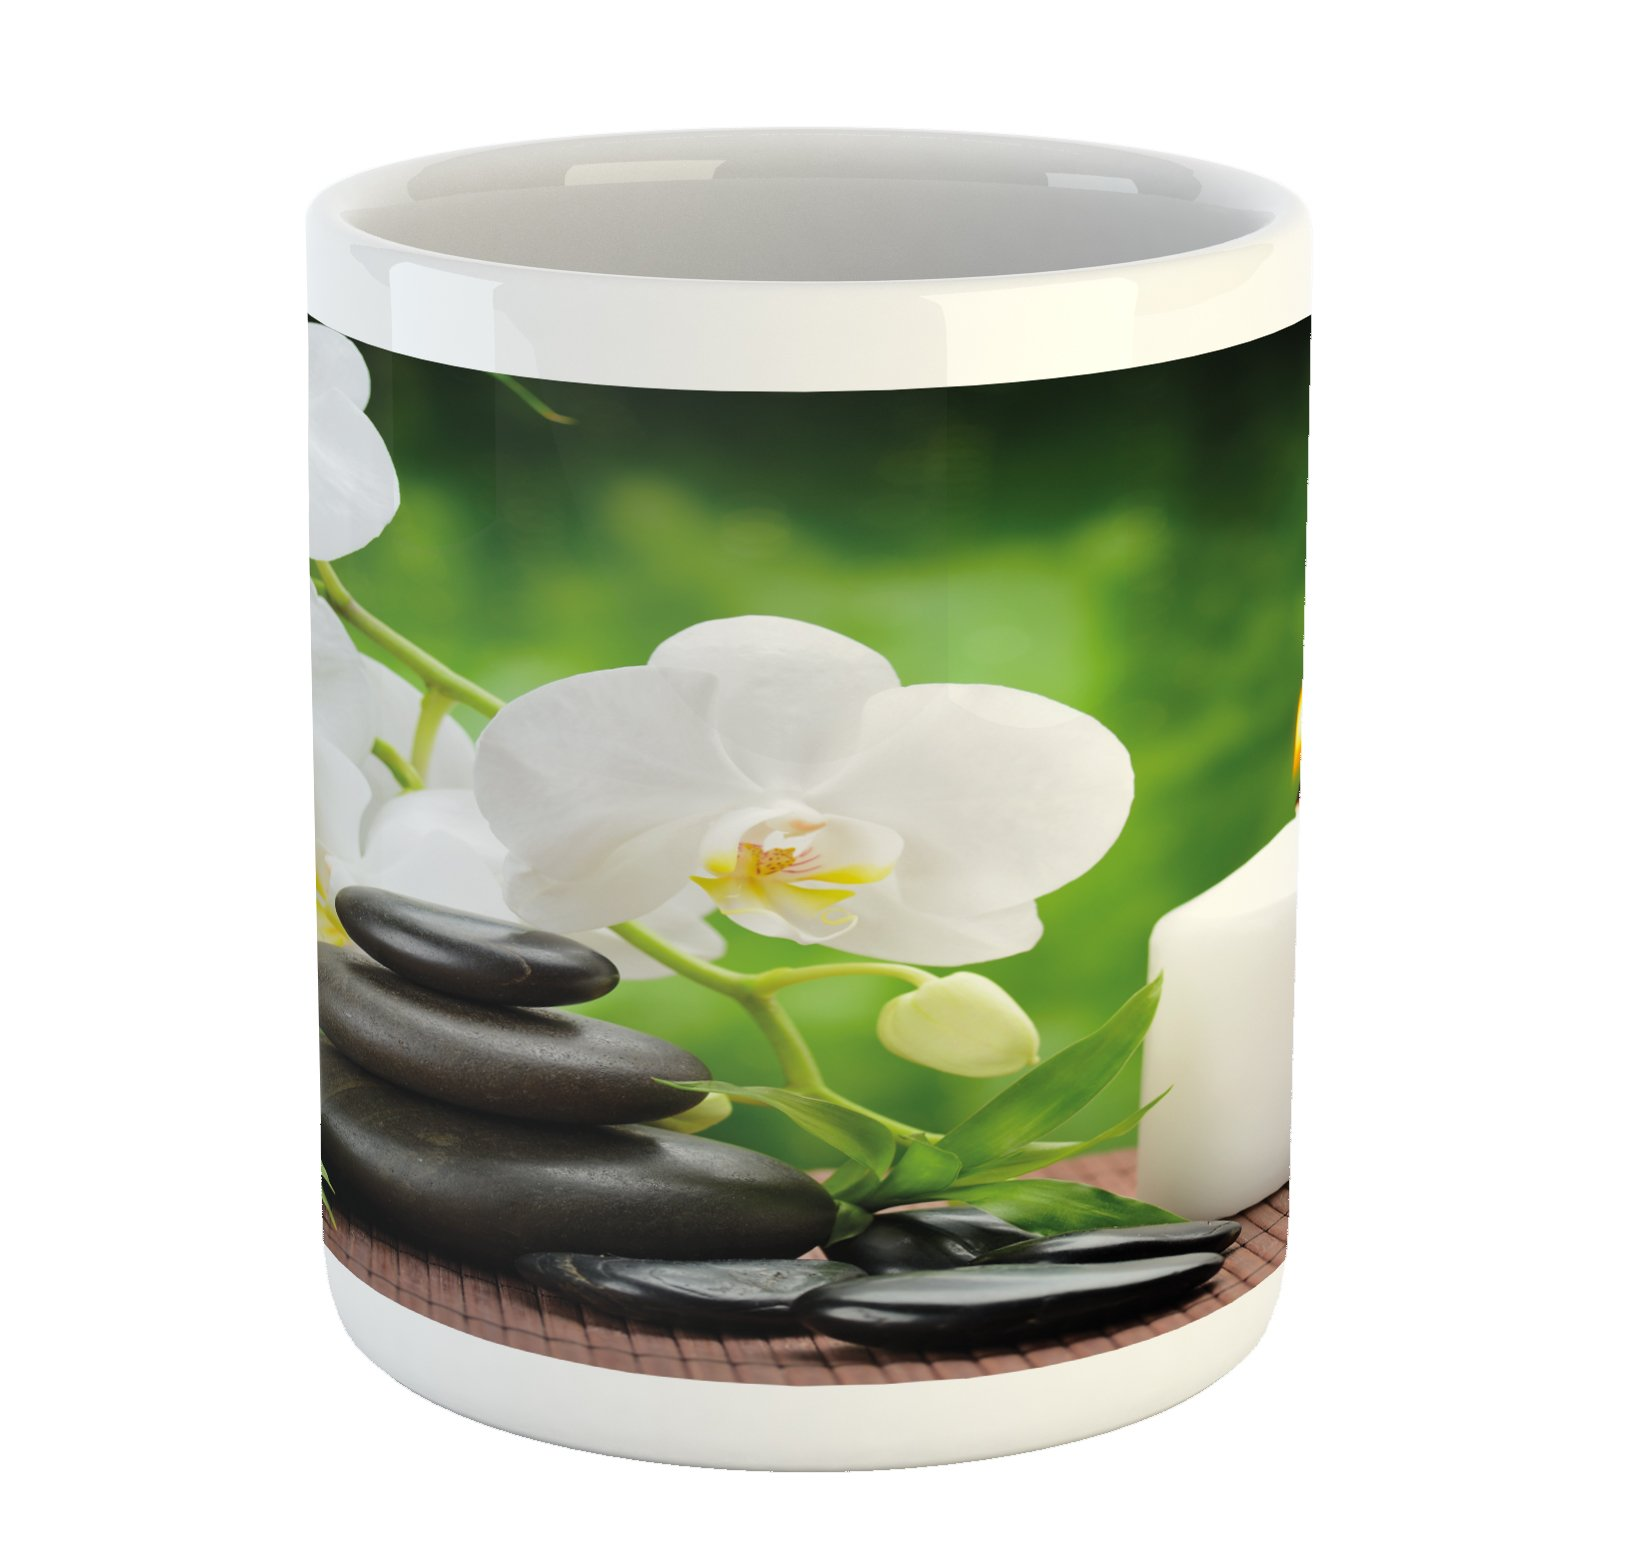 Ambesonne Spa Mug, Healing Zen Stones with Orchid and Burning Candles in a Romantic Harmony, Printed Ceramic Coffee Mug Water Tea Drinks Cup, Black White and Green